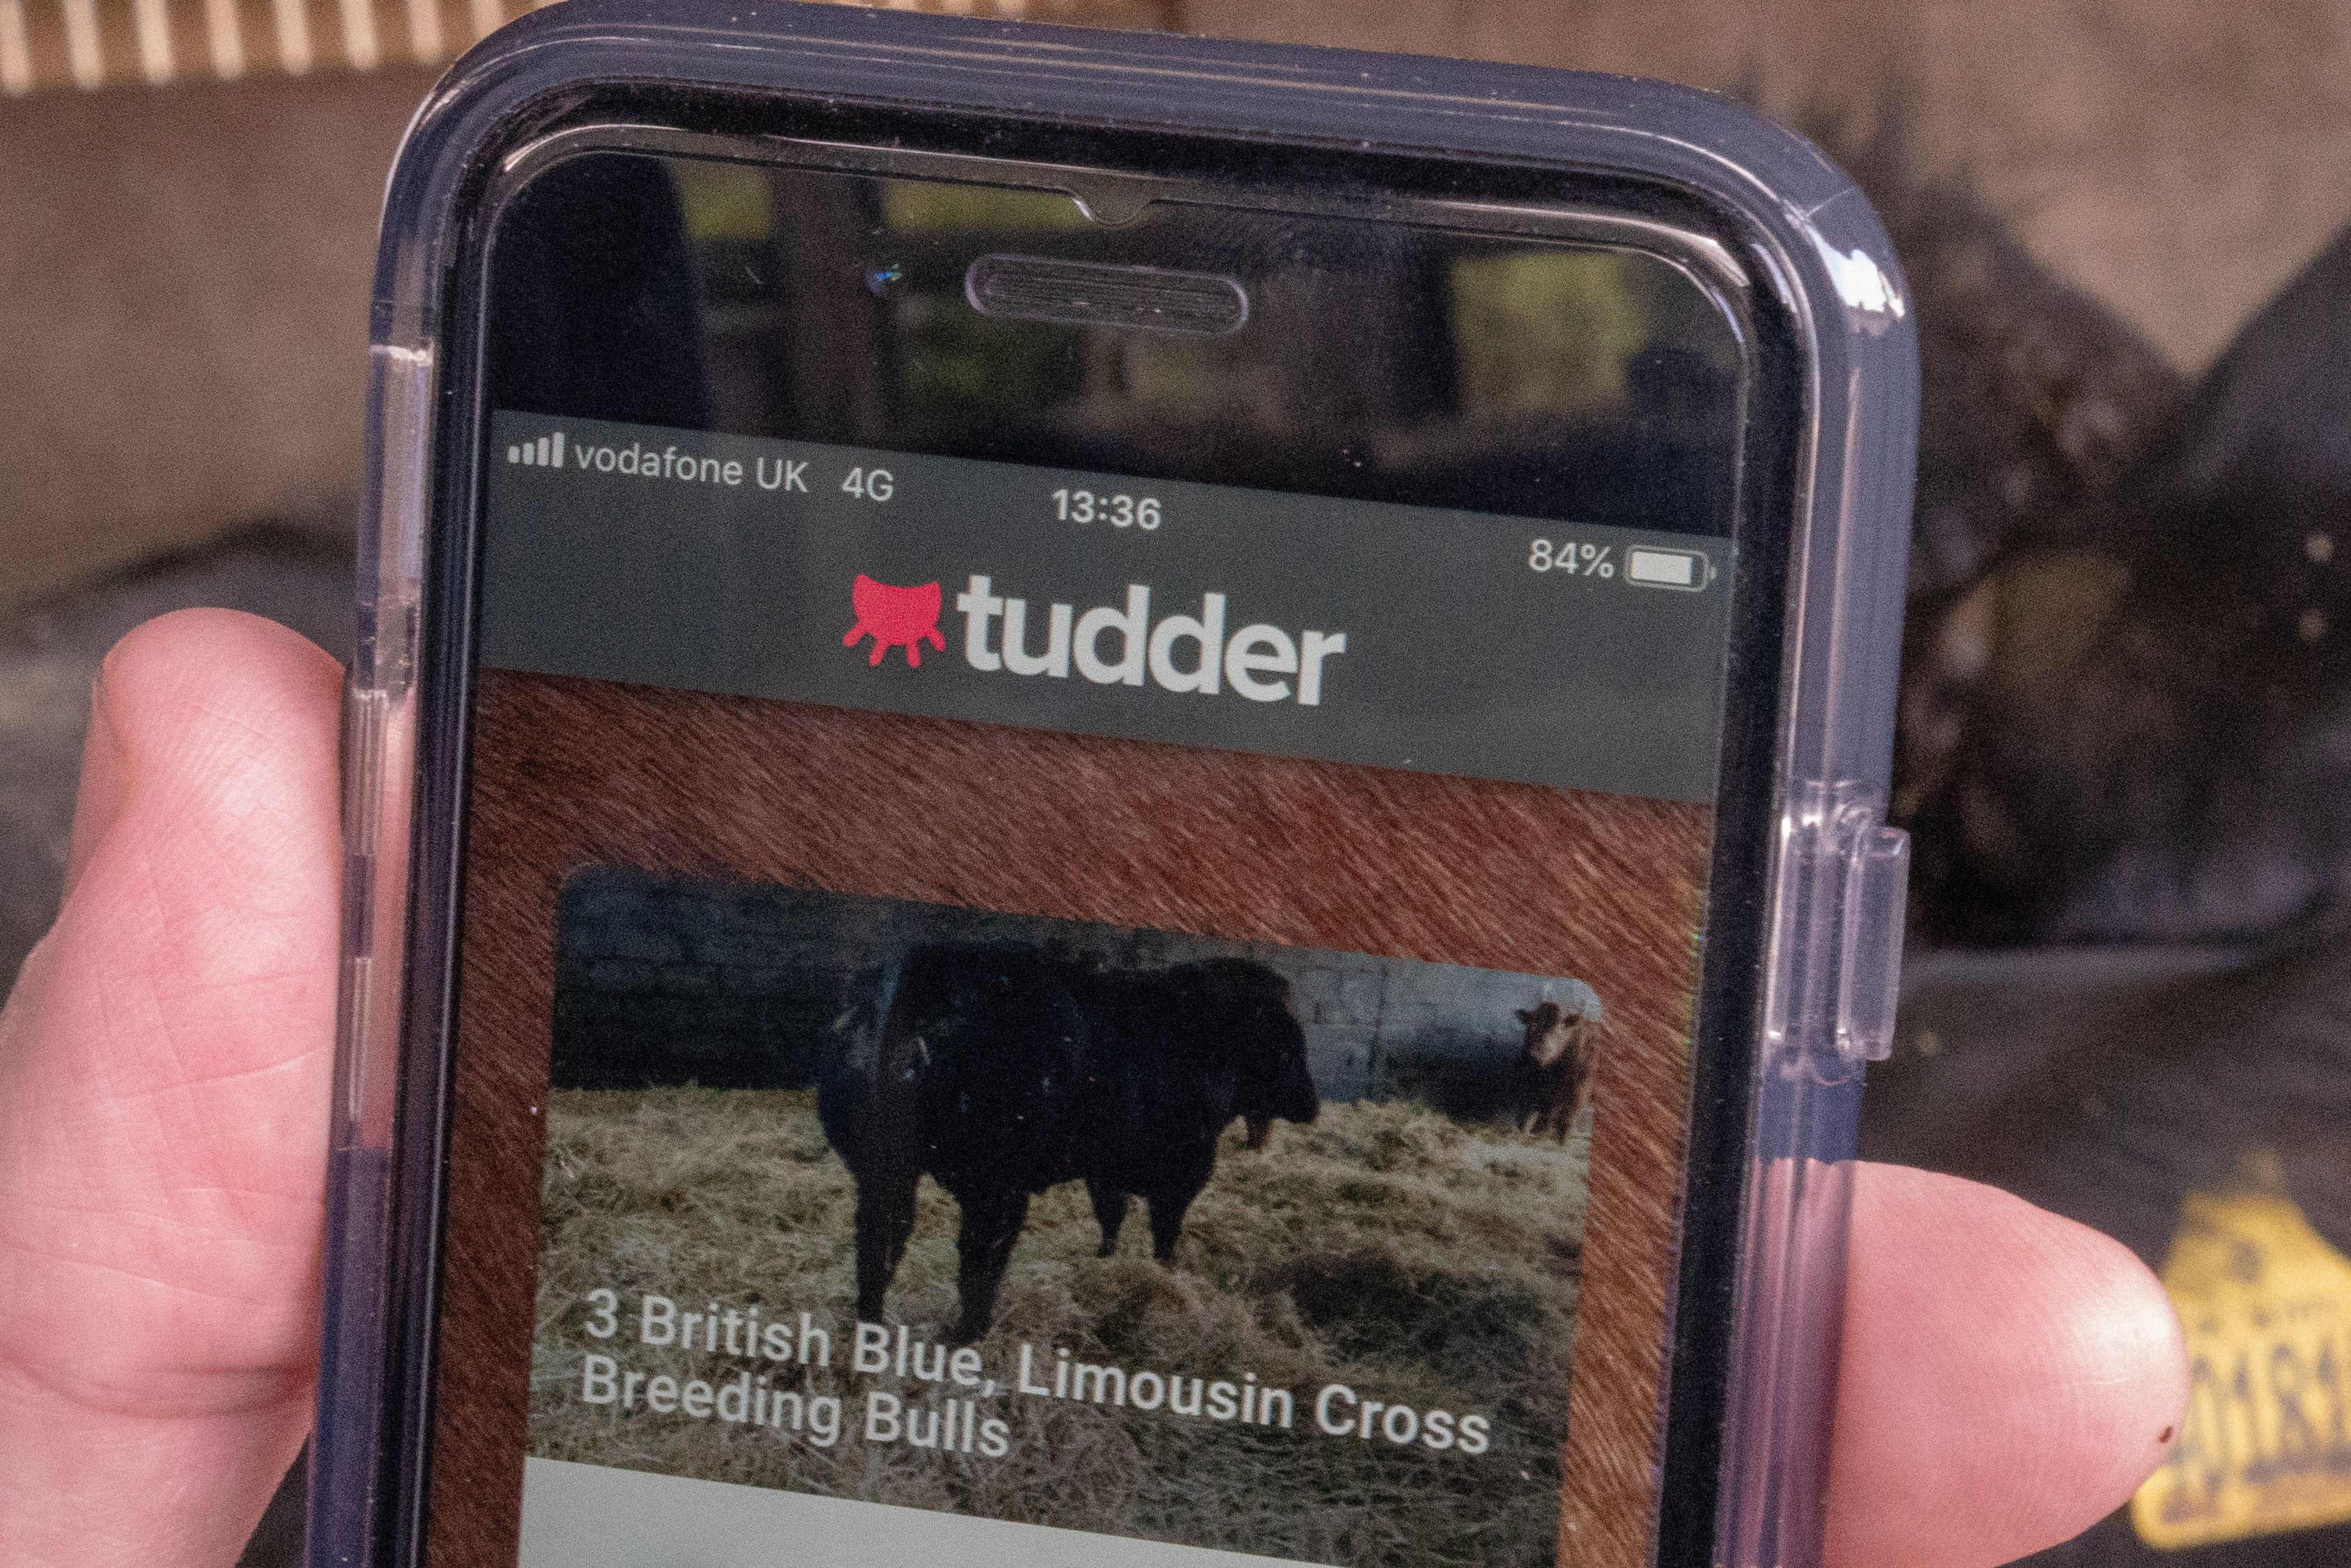 Read: New Tinder-like App Helps Farmers Match Livestock For Love